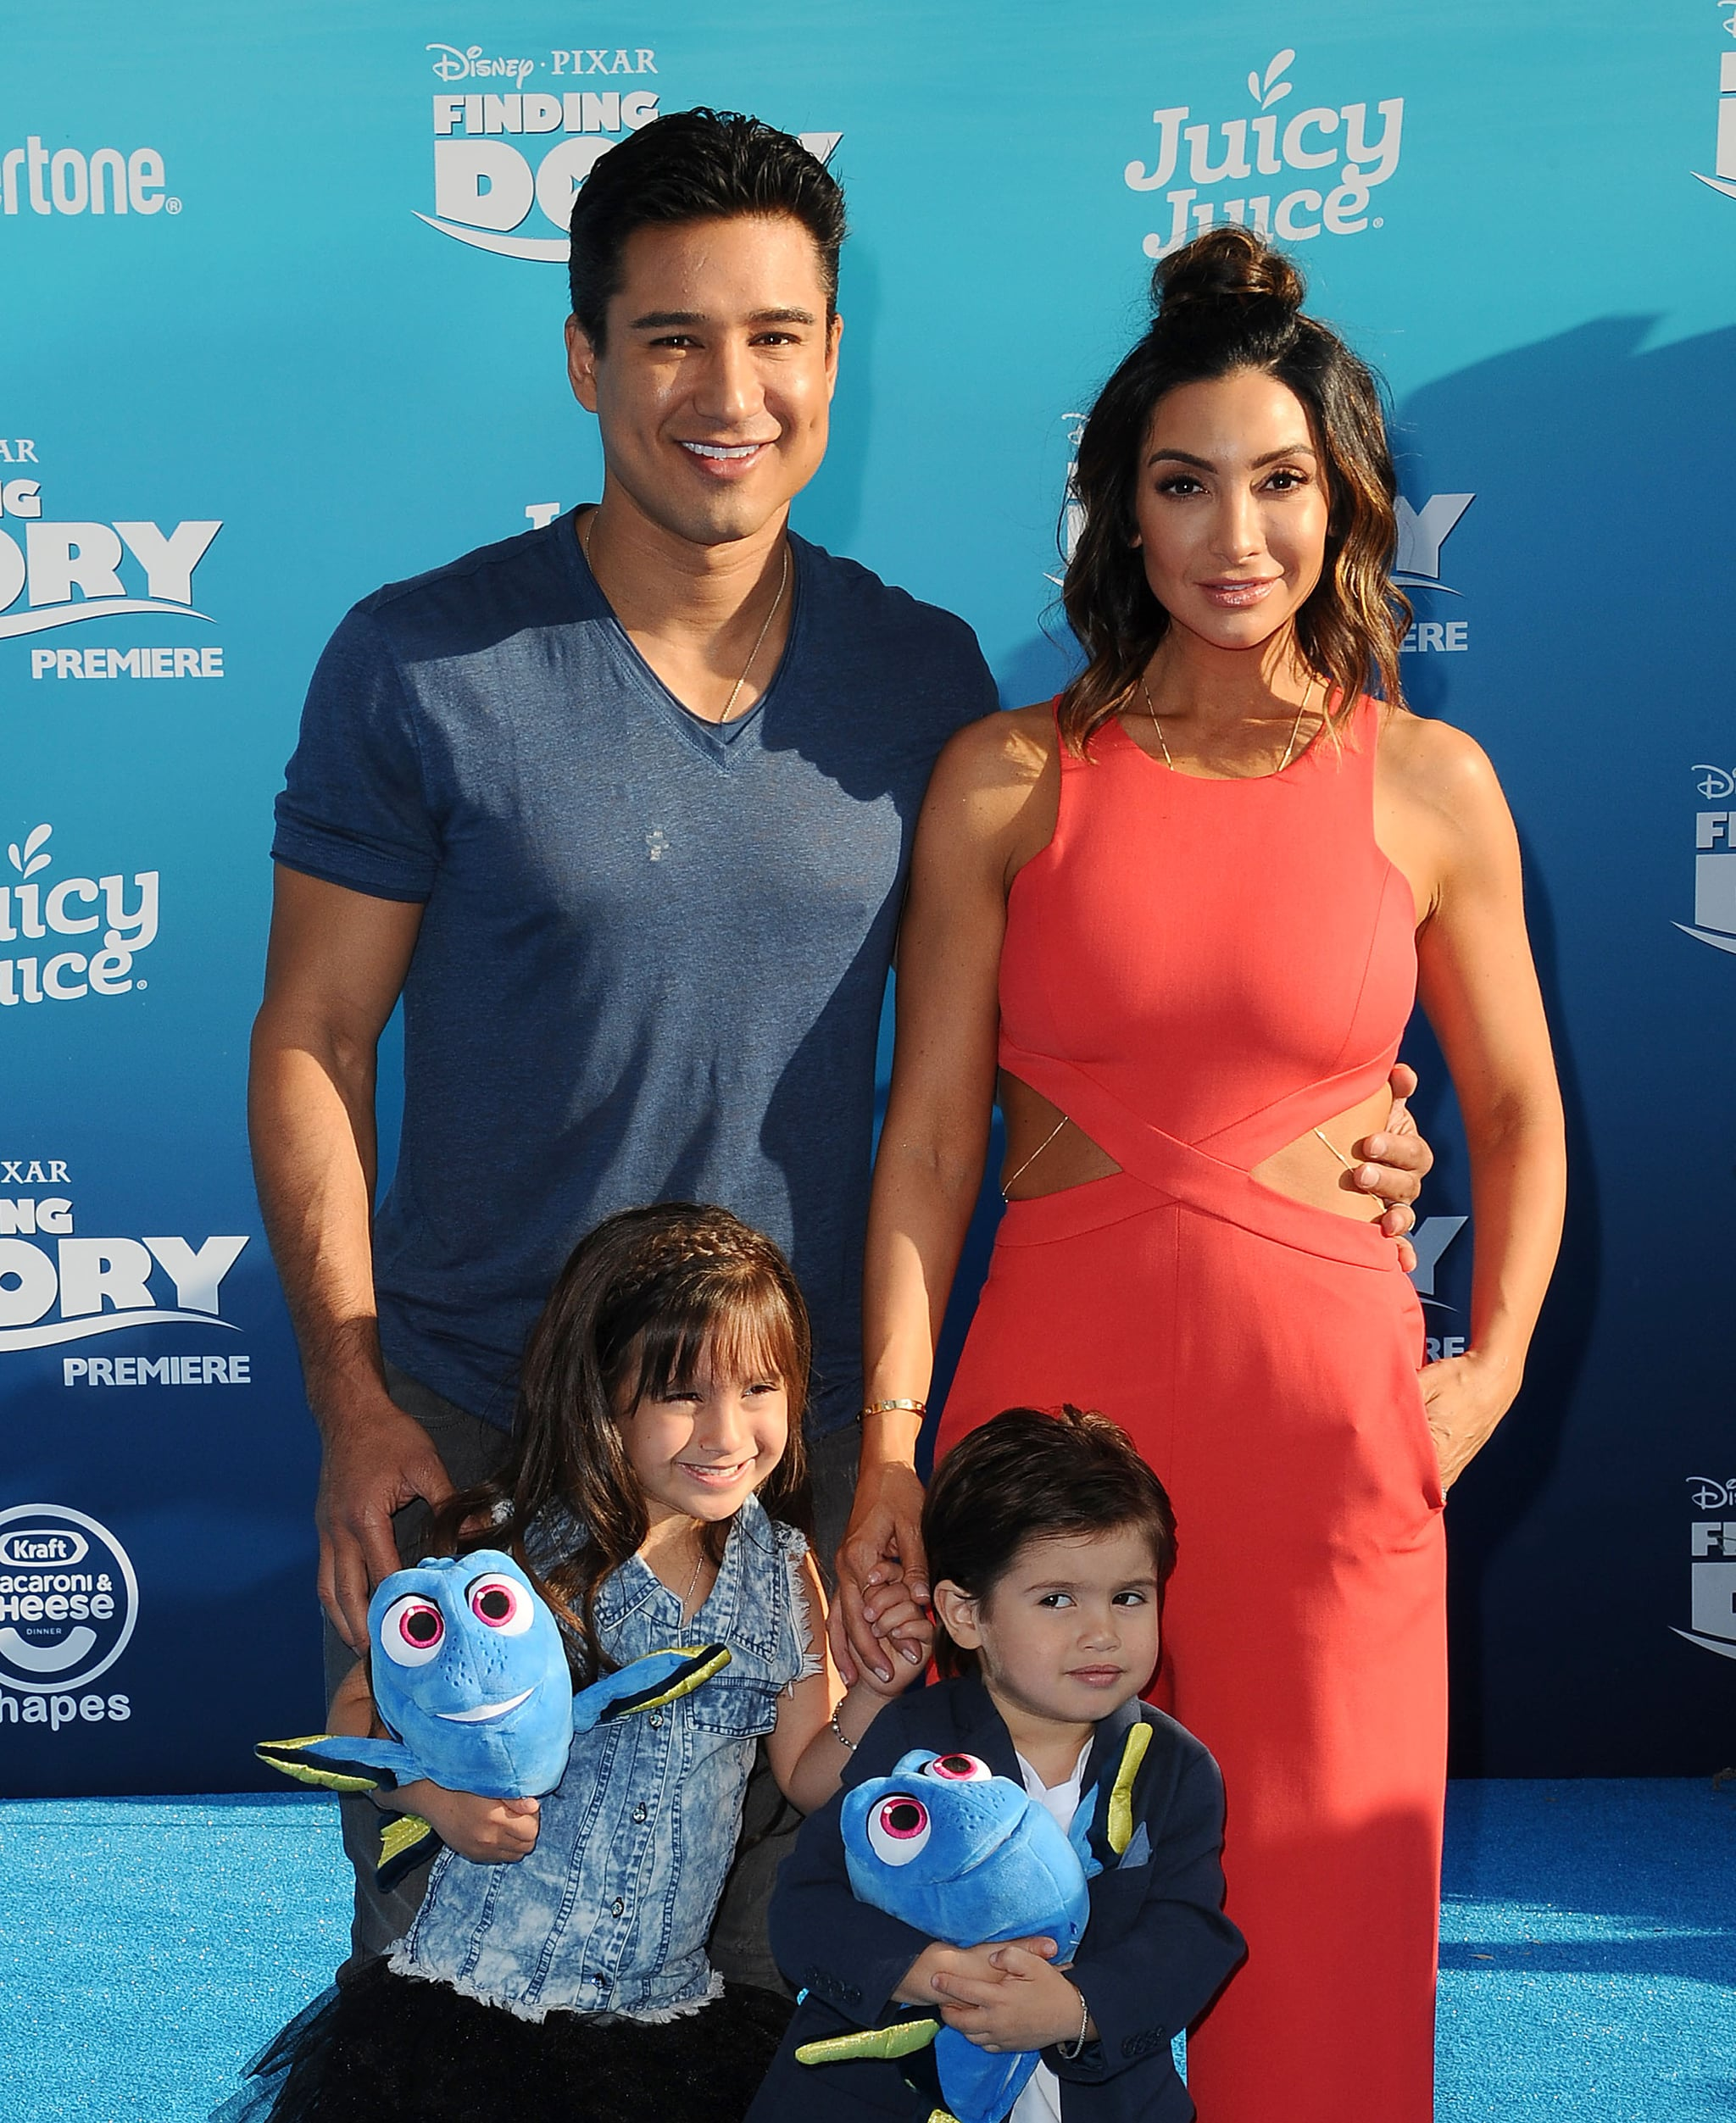 Celebrity Entertainment Sorry Dory But Mario Lopez And